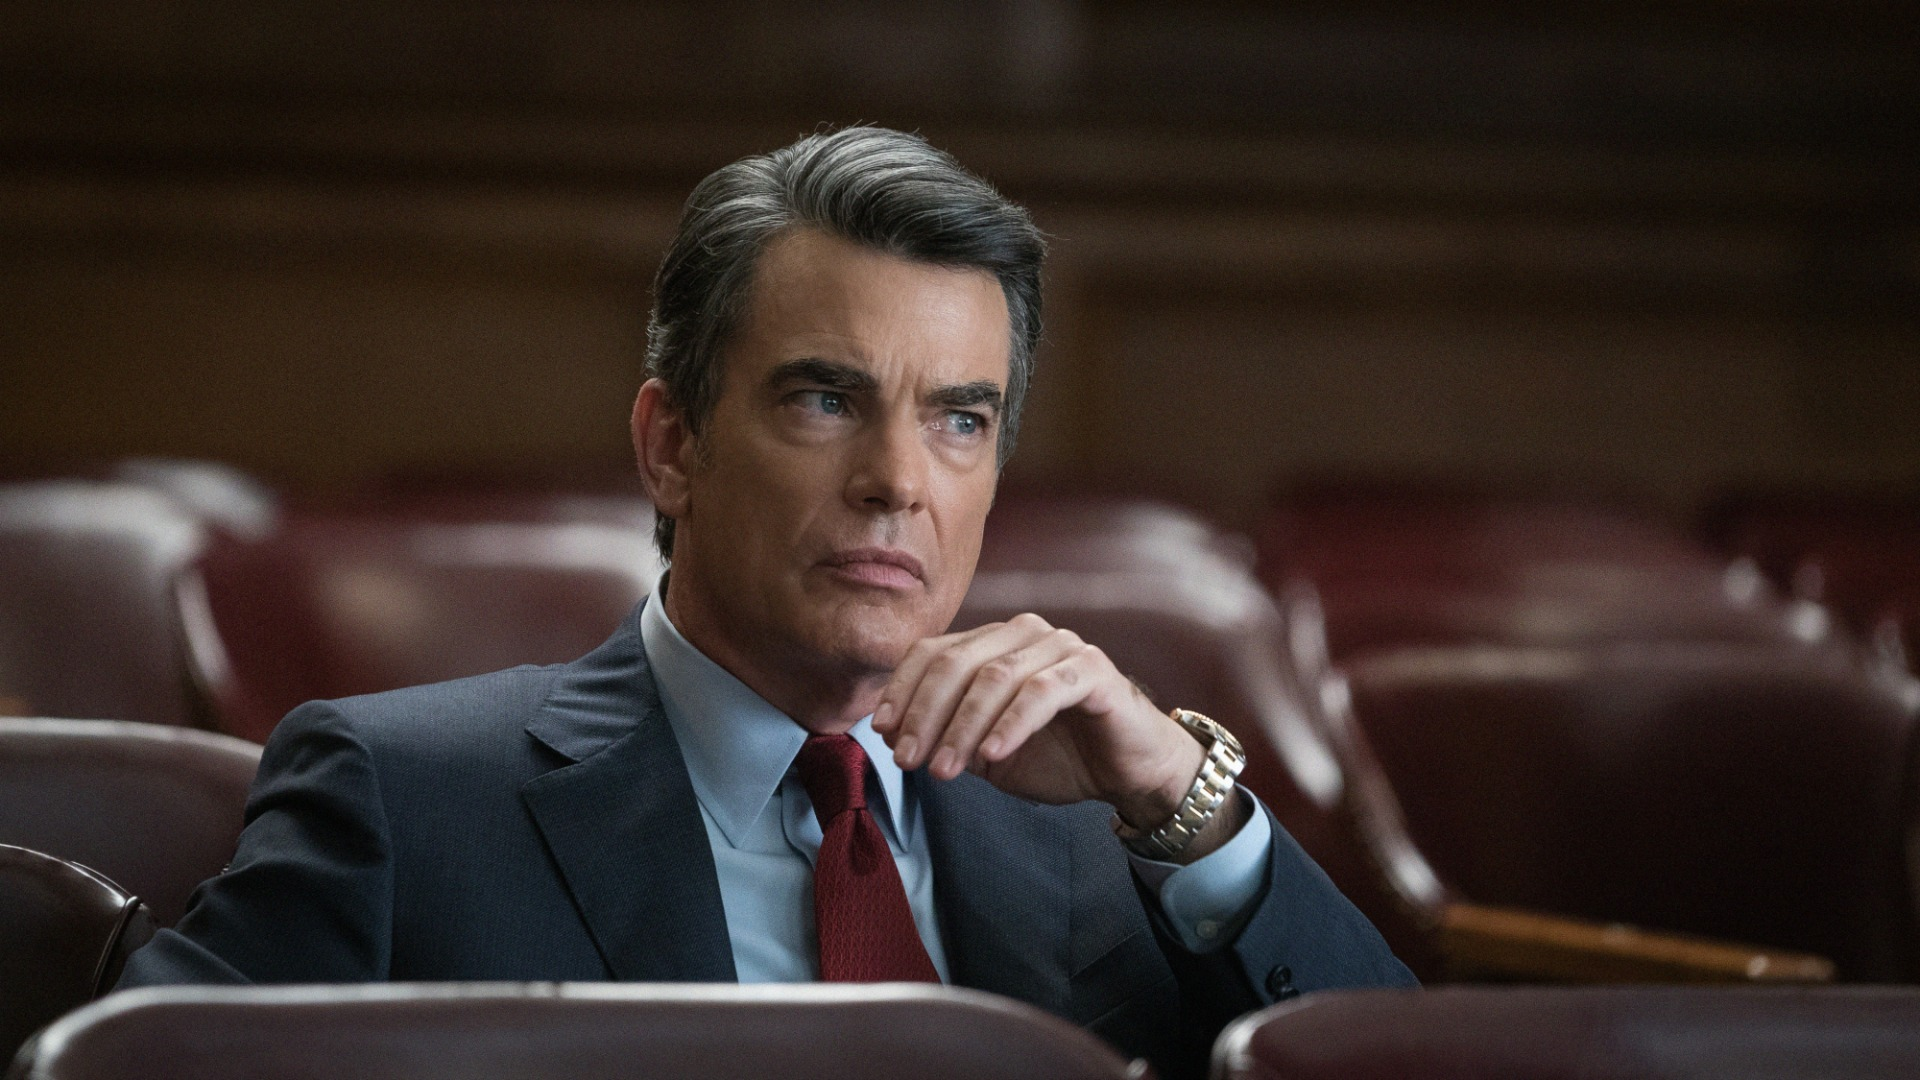 61 Exciting Guest Stars Of The Good Wife - The Good Wife